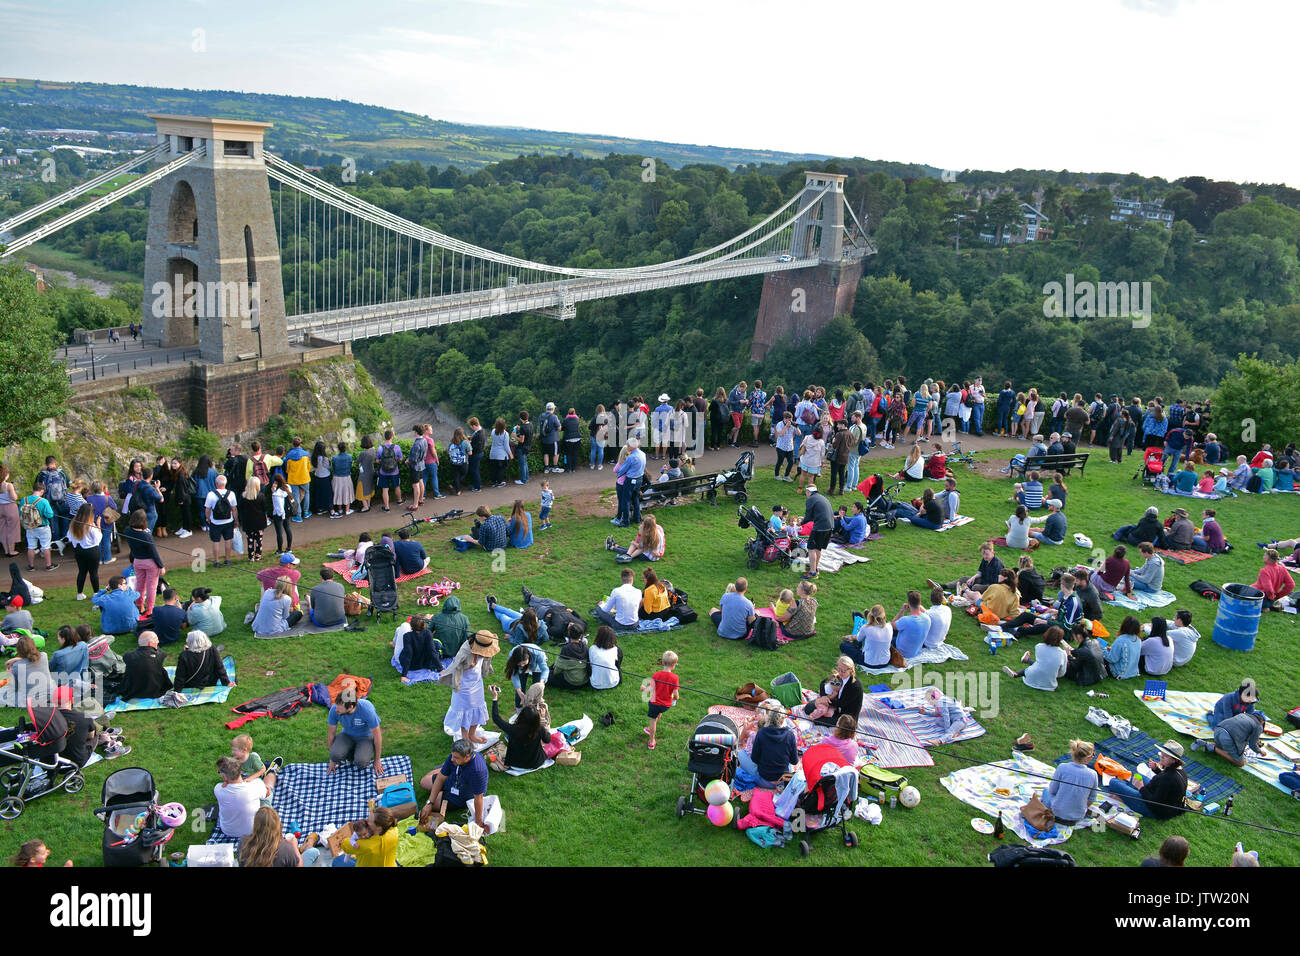 Bristol, UK. 10th Aug, 2017. UK Bristol. Thousands of people sitting on the grass by the observatory tower over looking World famous Clifton Suspension Bridge, hoping to get a wonderful view of the balloons as they lift off from Ashton Court Estate on the first evening of the Event. Mandatory Byline Credit: Robert Timoney/Alamy Live News - Stock Image